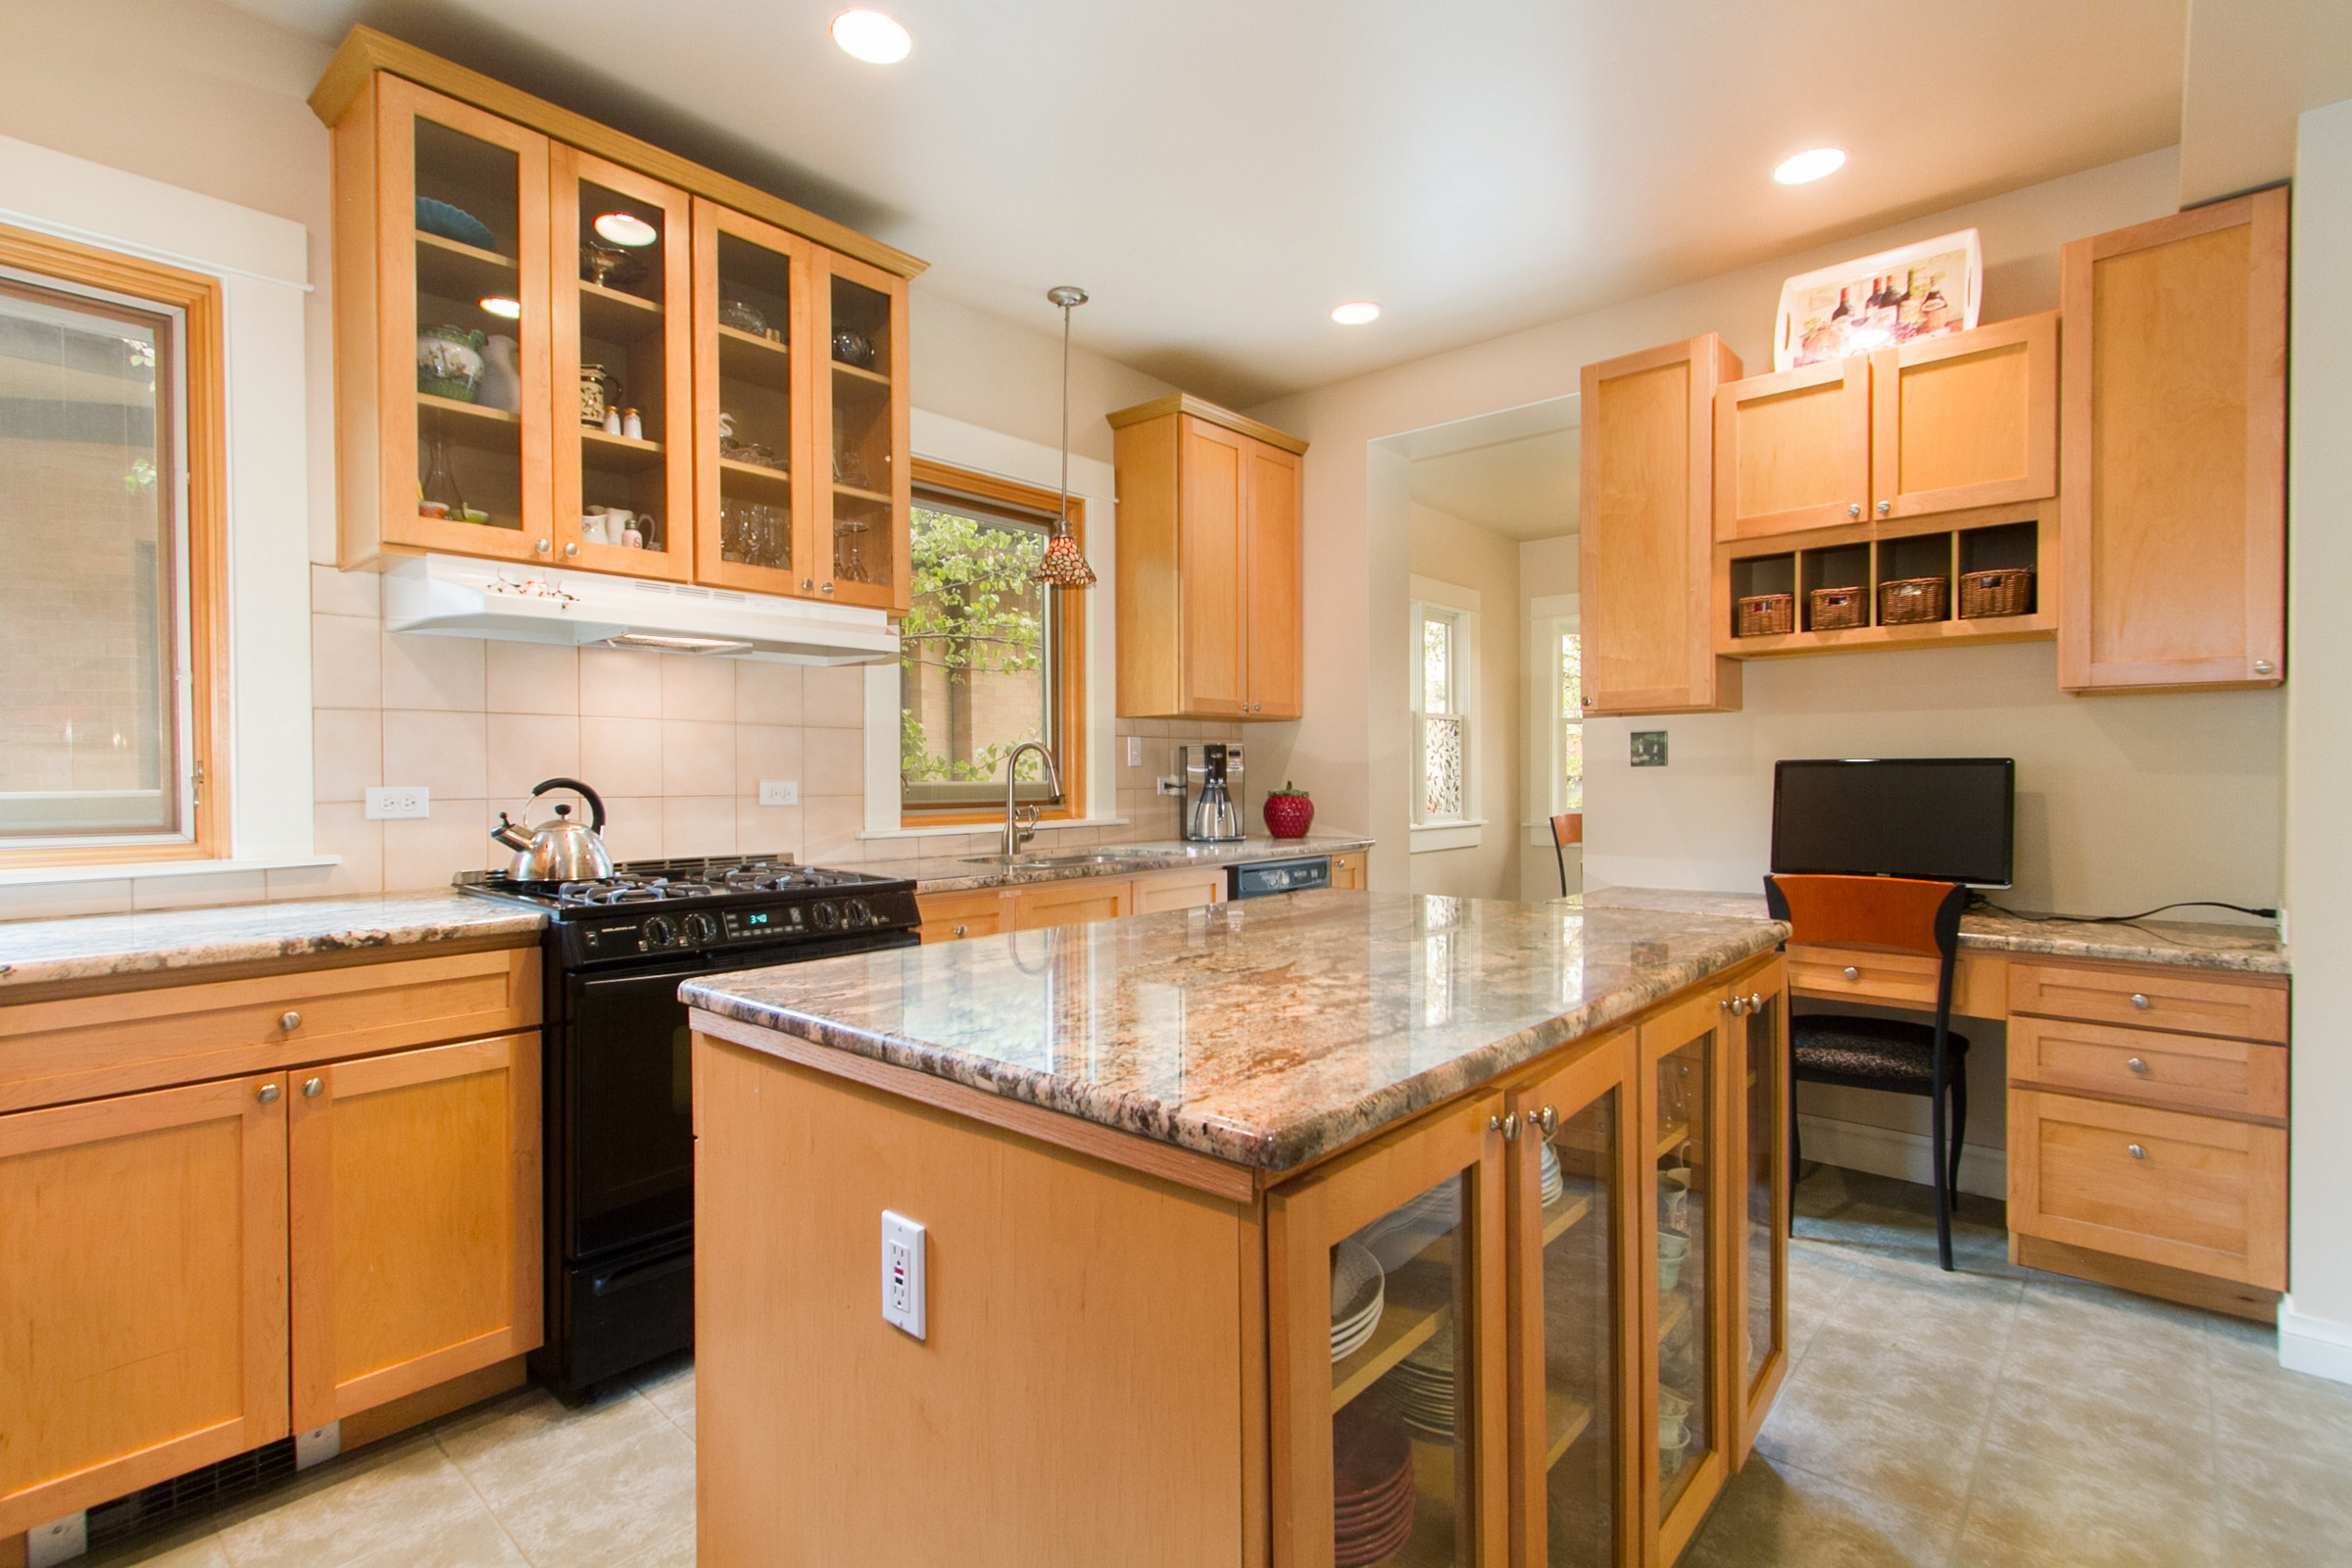 1246123_Updated-Kitchen-with-Granite-Counters-And-Desk_high.jpg